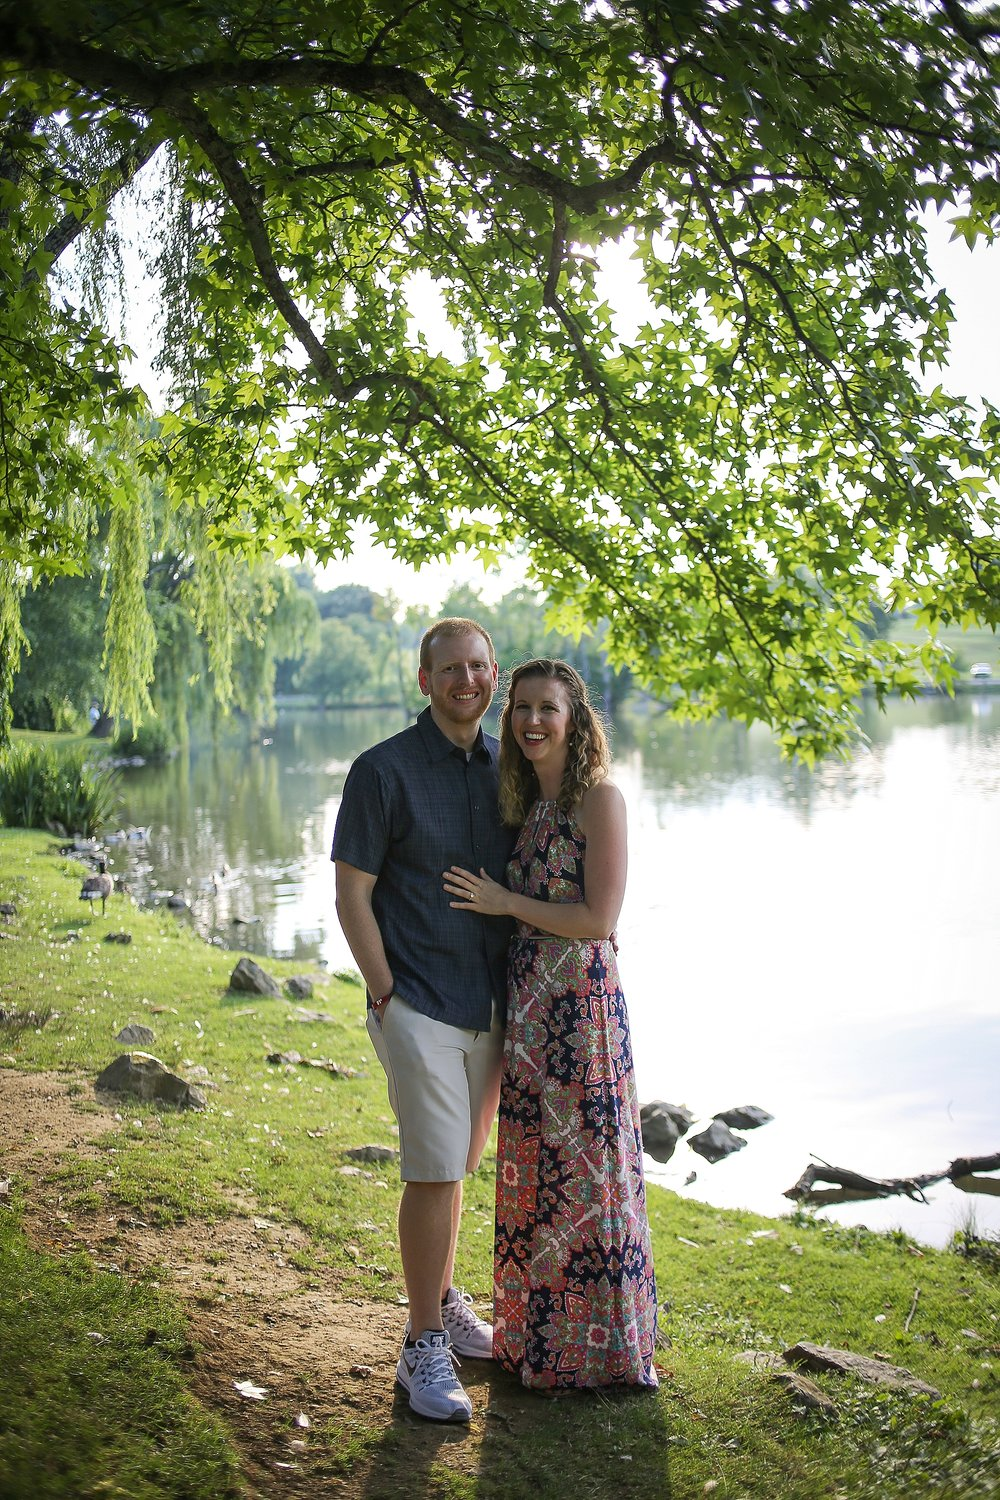 Matt + Amy's Virginia Tech Duck Pond Proposal | Blacksburg, Virginia Engagement Photographer: Holly Cromer